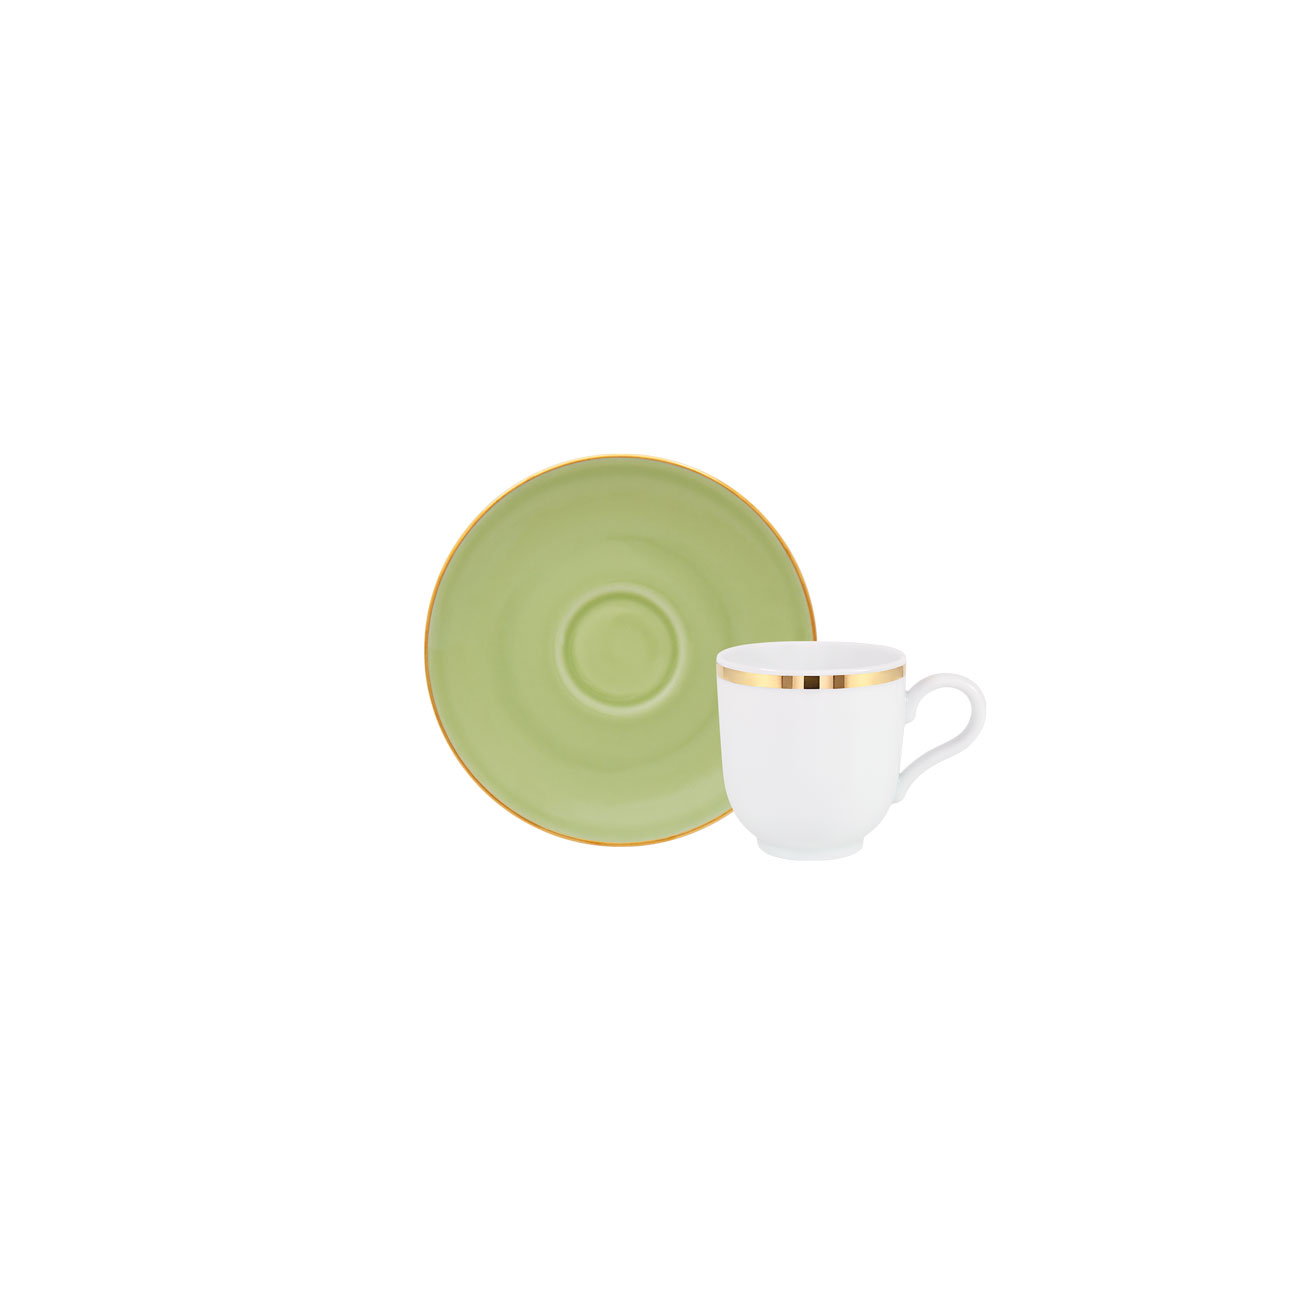 Golden | Coffee Cup 10cl Antar + Matcha | Coffee Saucer 12cm Olympus 0